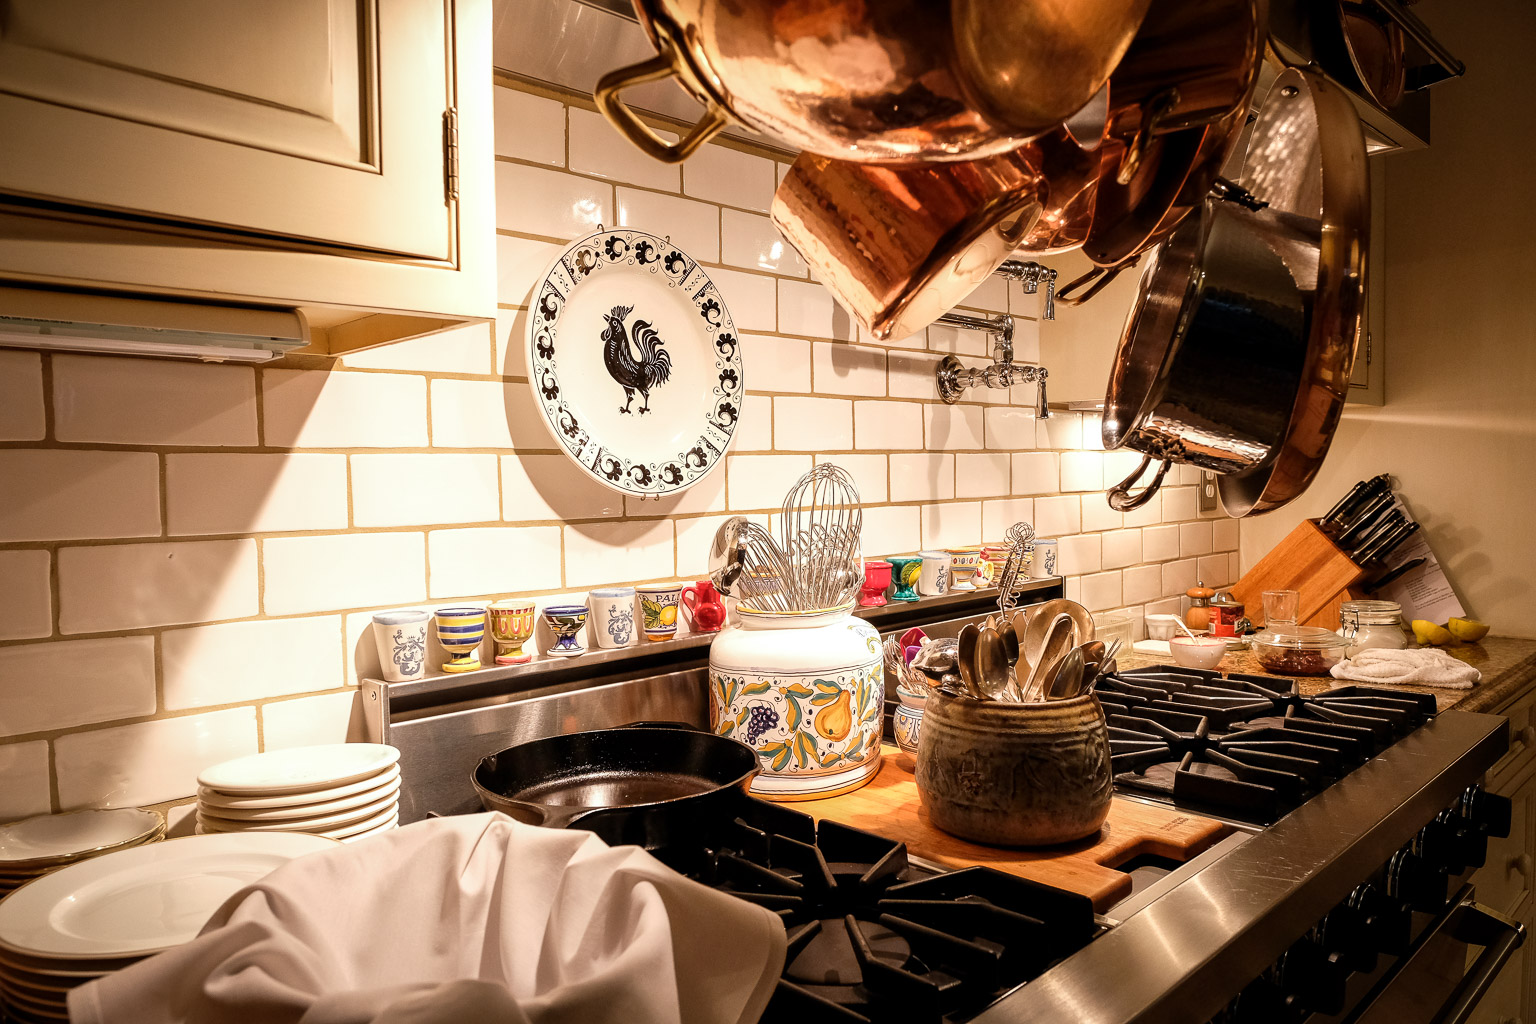 This is not a decorative kitchen. Everything you see here is well-used and meticulously maintained. Look at the finish on that cast iron skillet! If I posted a picture of my cast iron skillet, I'd lose all four of my subscribers.